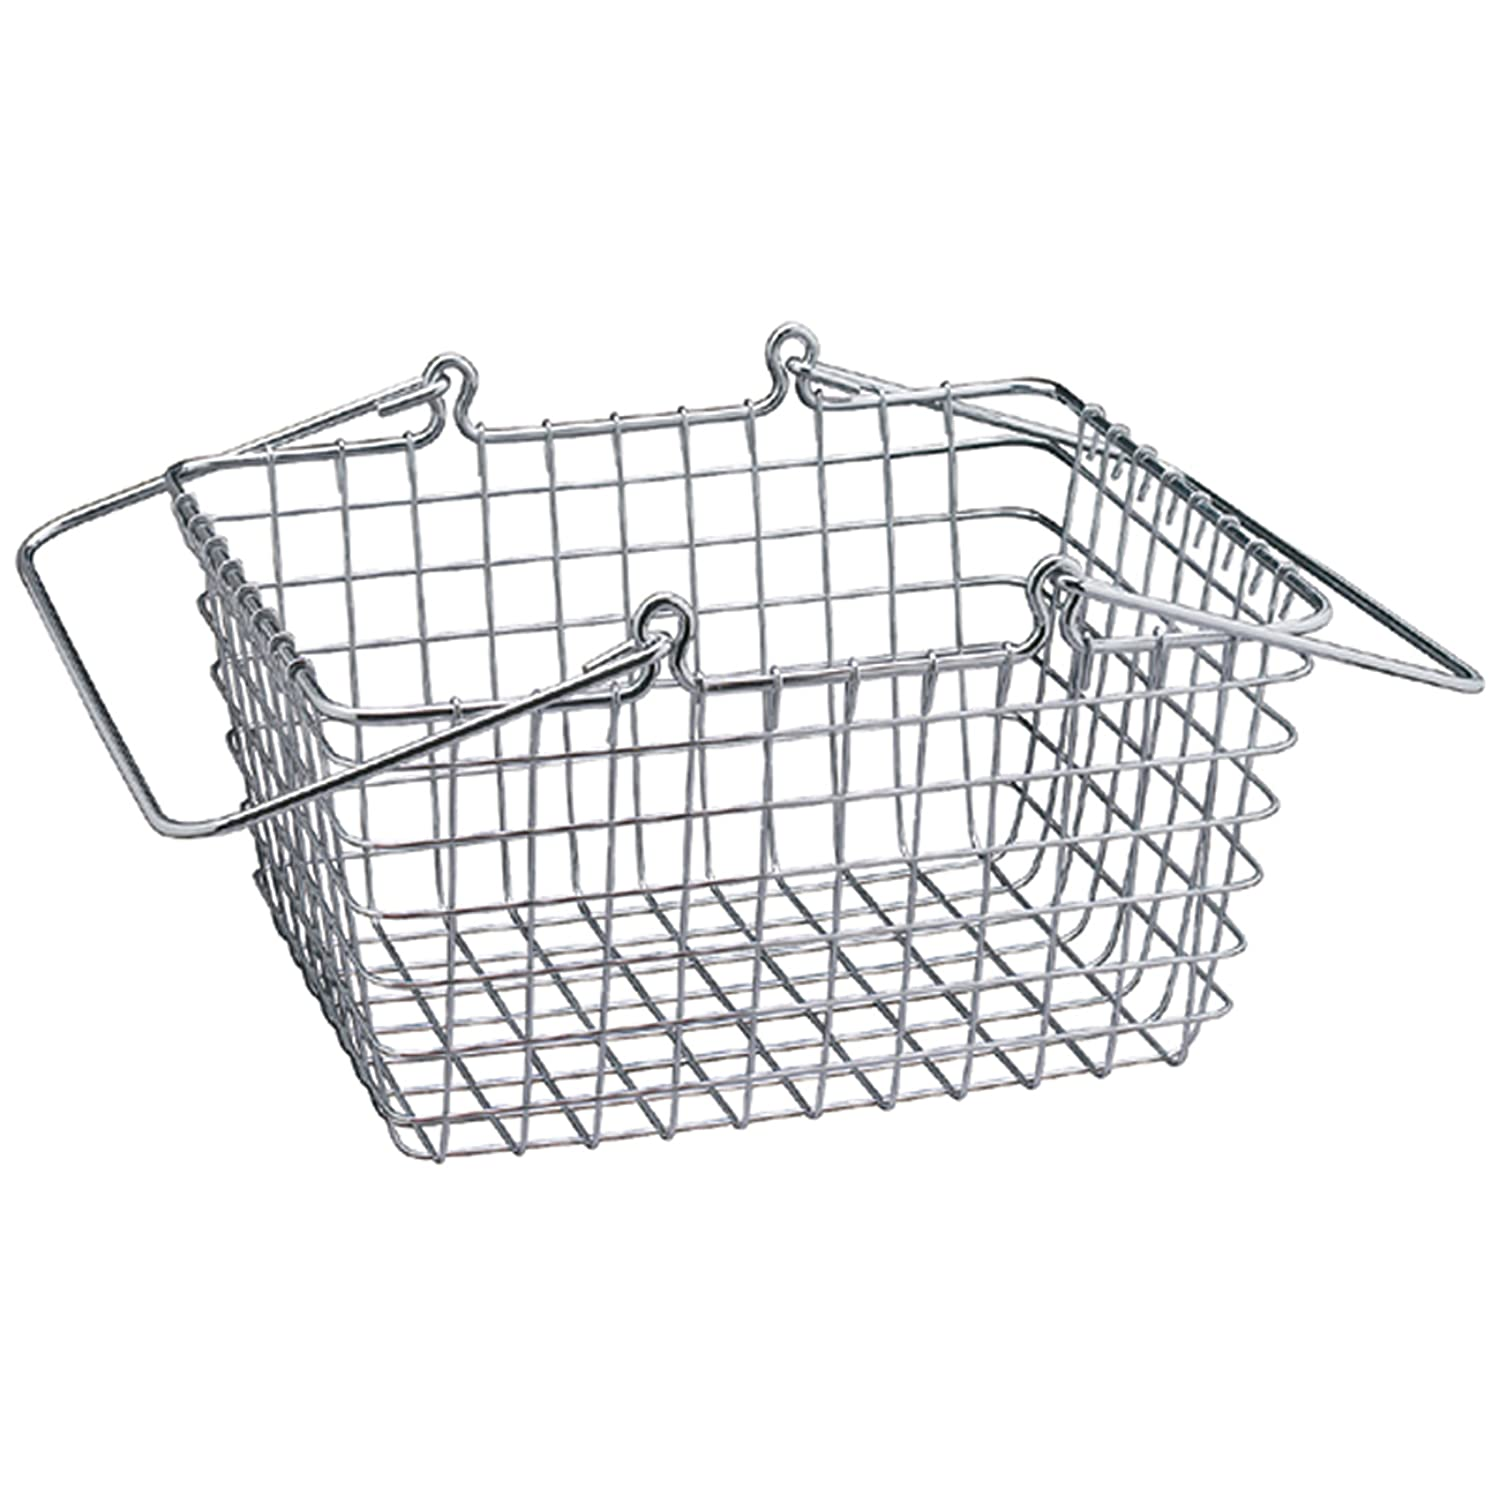 Amazon.com: InterDesign Century Works Wire Organizer Basket with ...